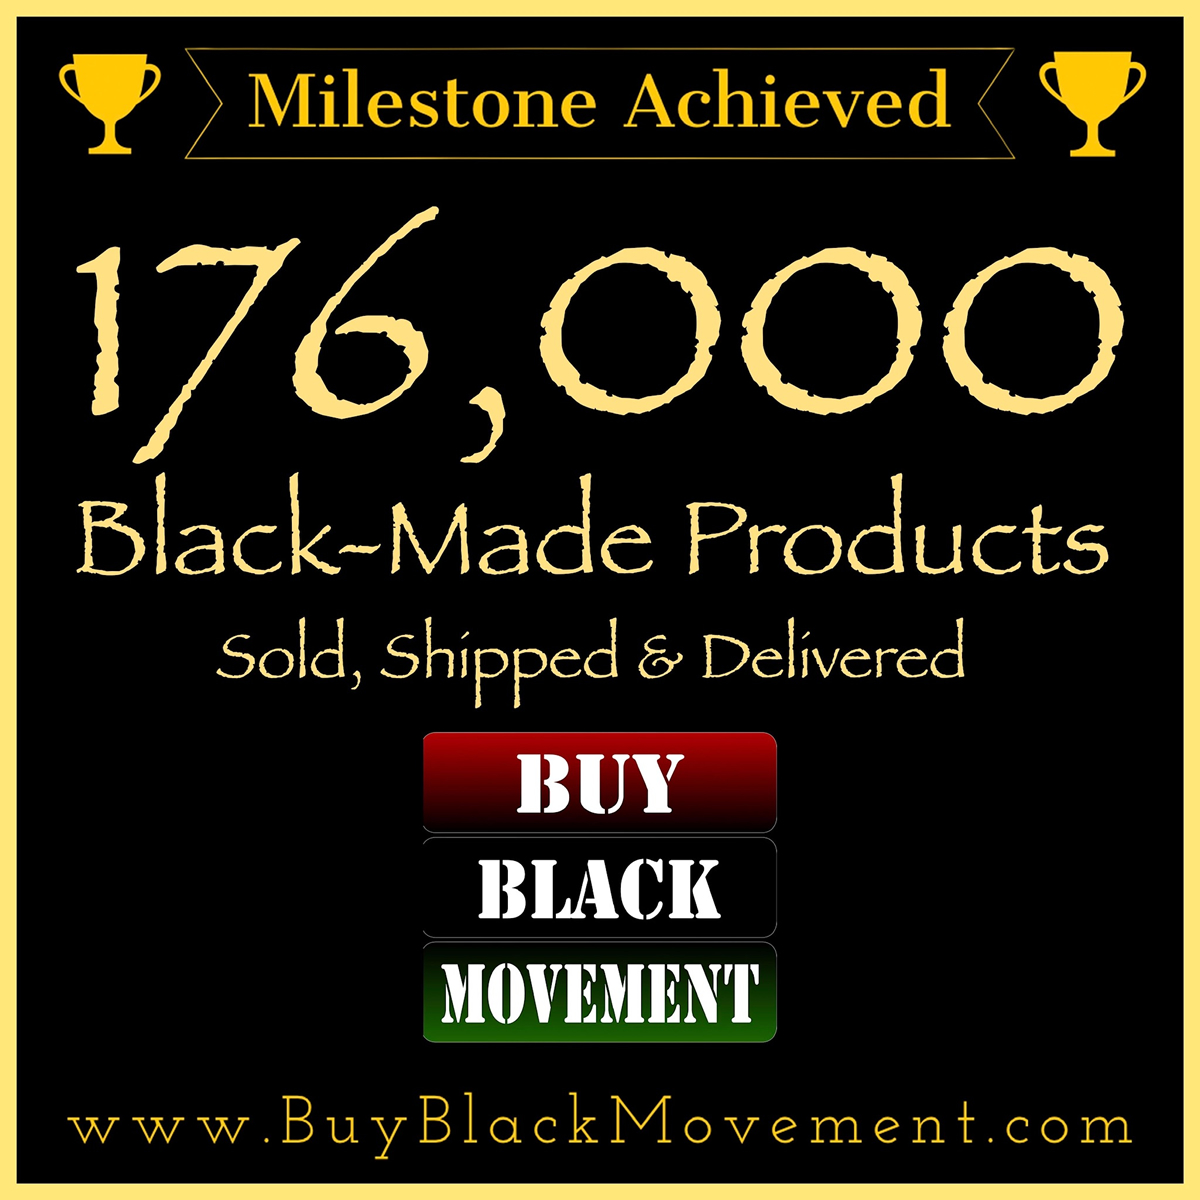 176,000 Products Sold